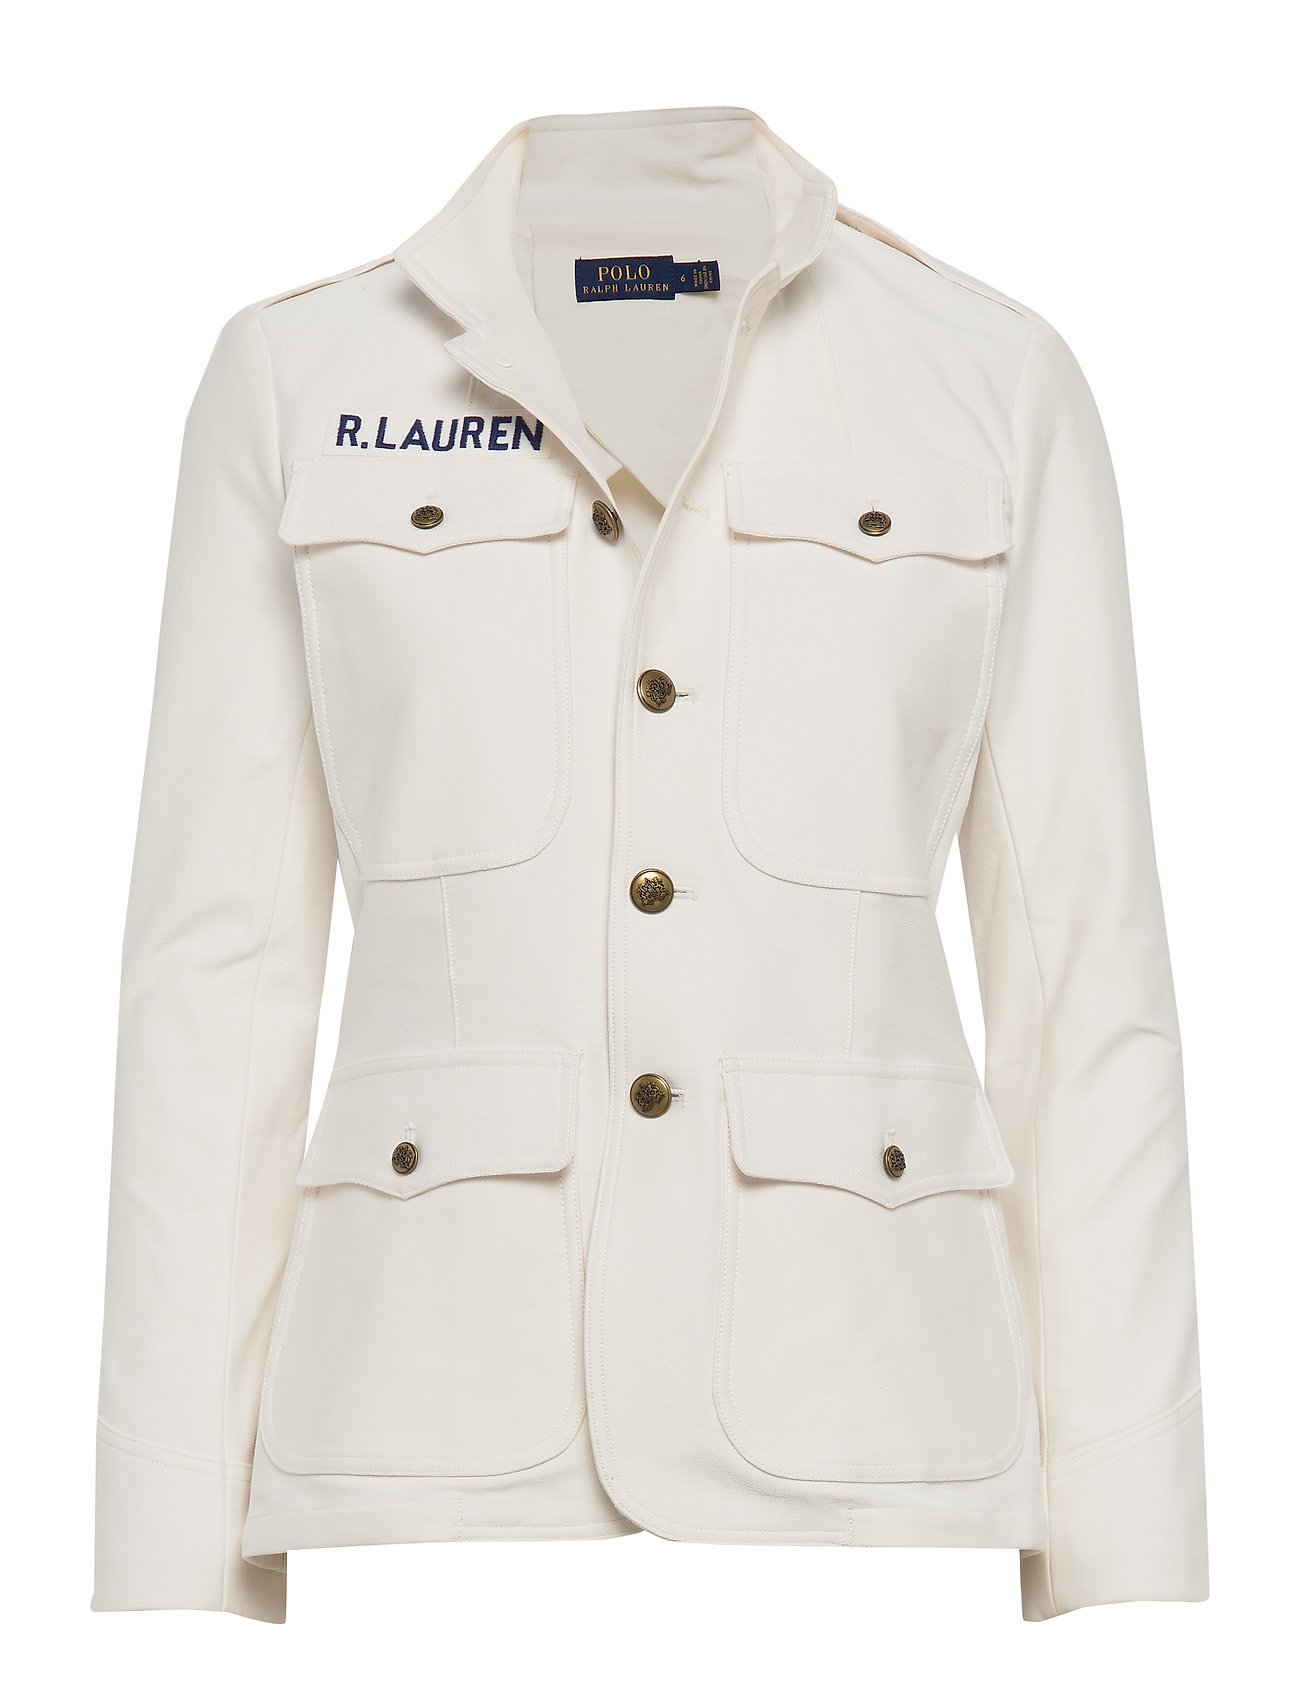 Polo Ralph Lauren Cotton Stretch Blazer - NEVIS